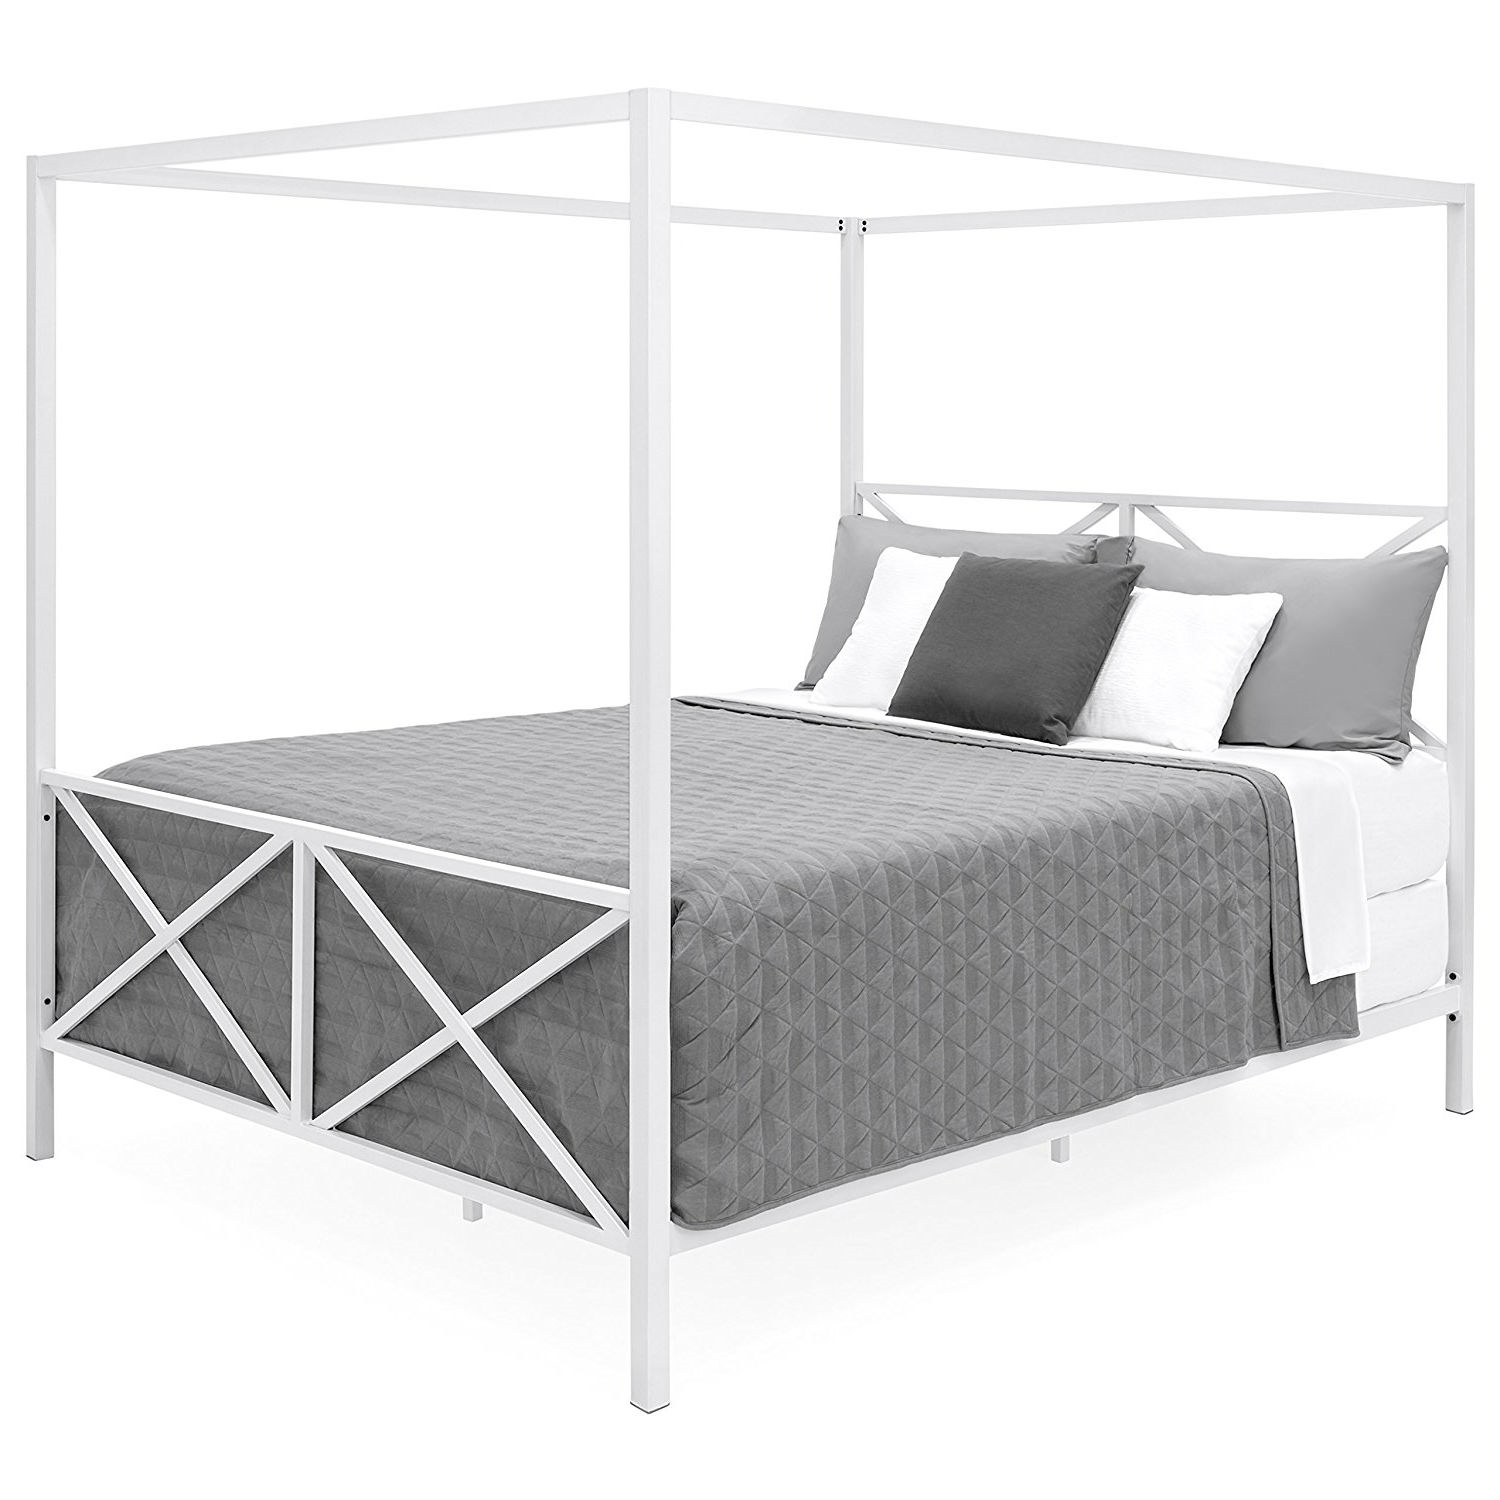 Queen size Modern Industrial Style White Metal Canopy Bed Frame ...